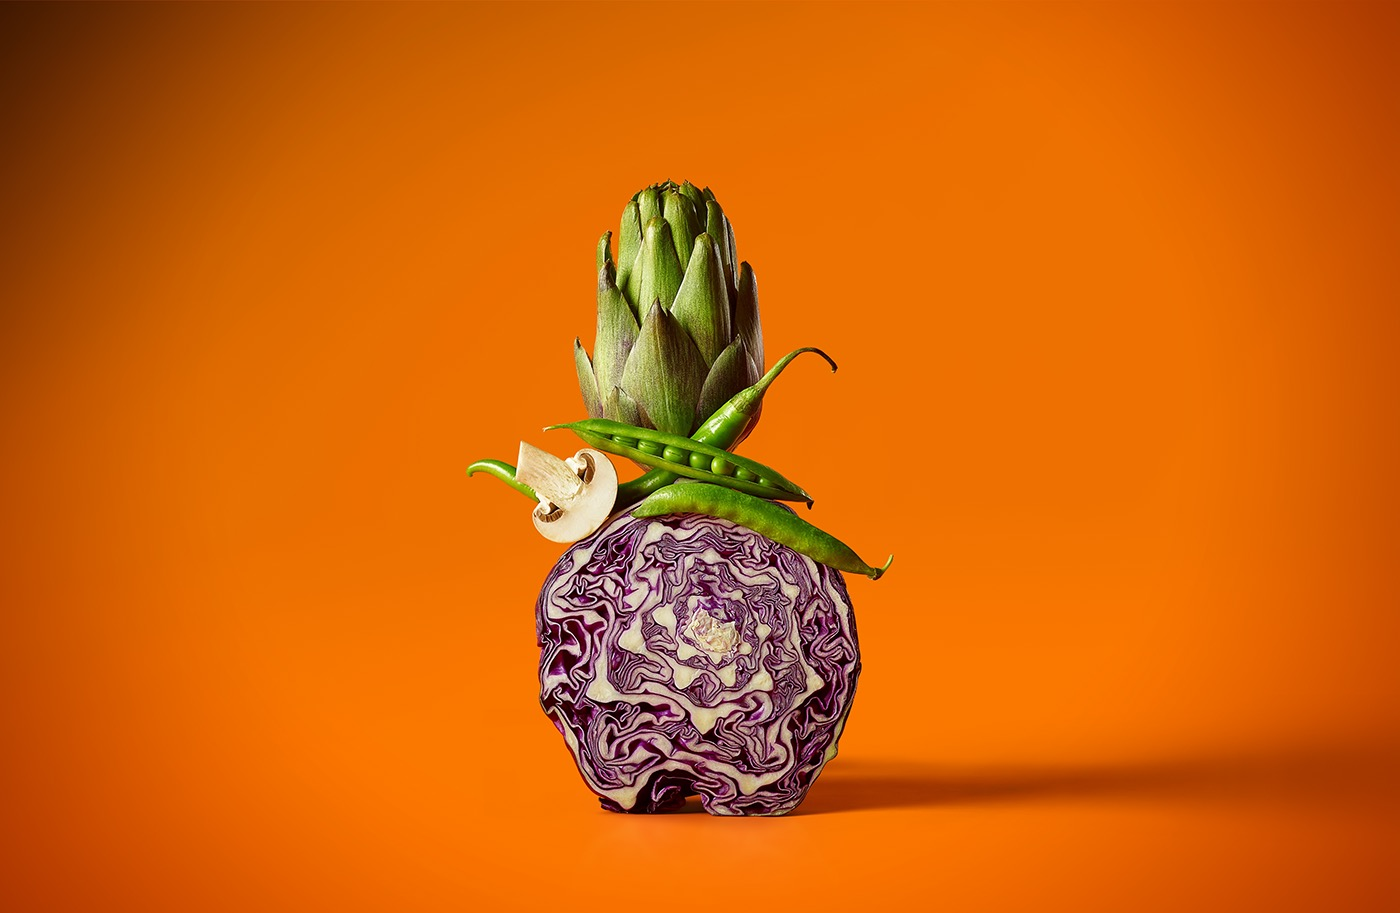 Food Photography & Retouching Ideas For Inspiration (6)